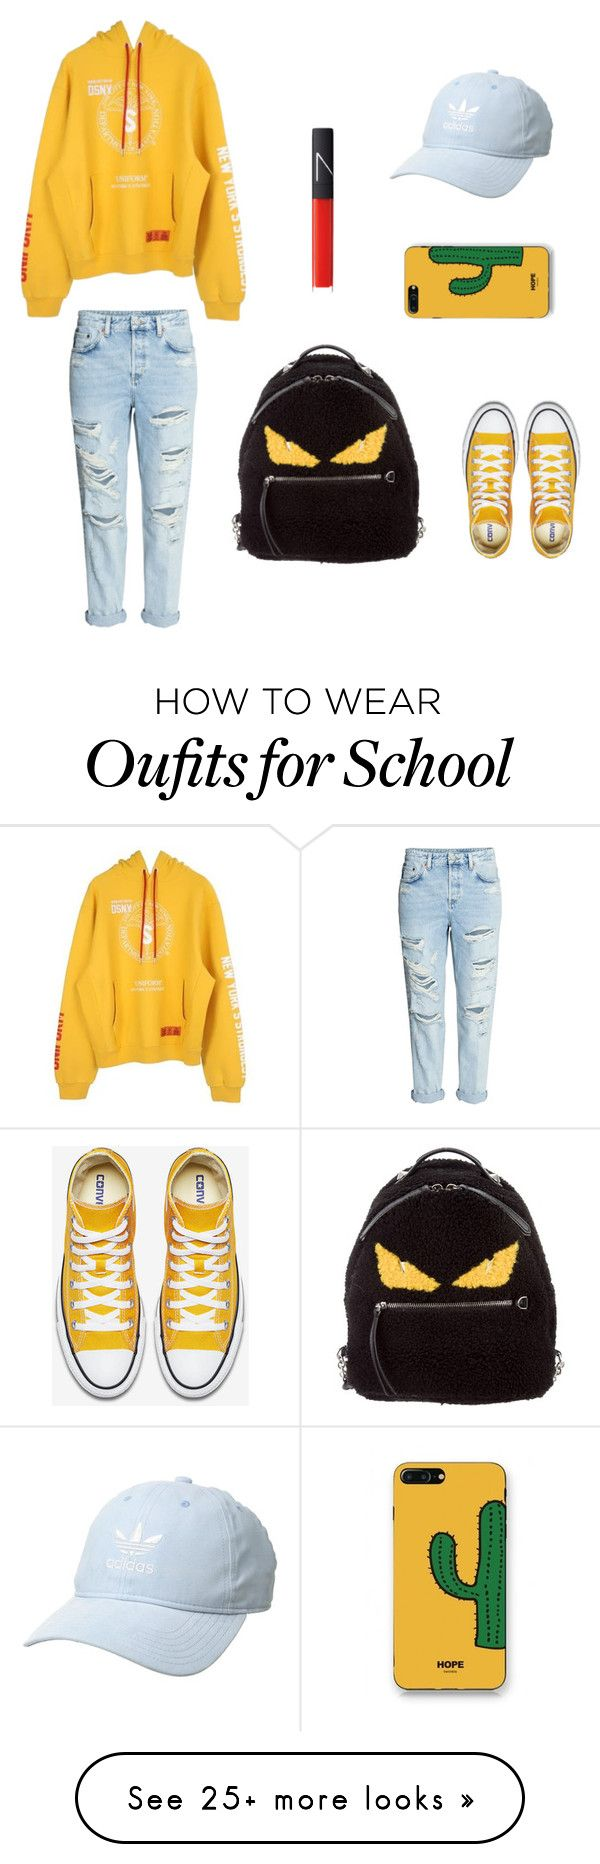 """Back to school "" by lisaachan on Polyvore featuring Heron Preston, Fendi, WithChic, adidas Originals, NARS Cosmetics, outfit, ootd and fashionable"